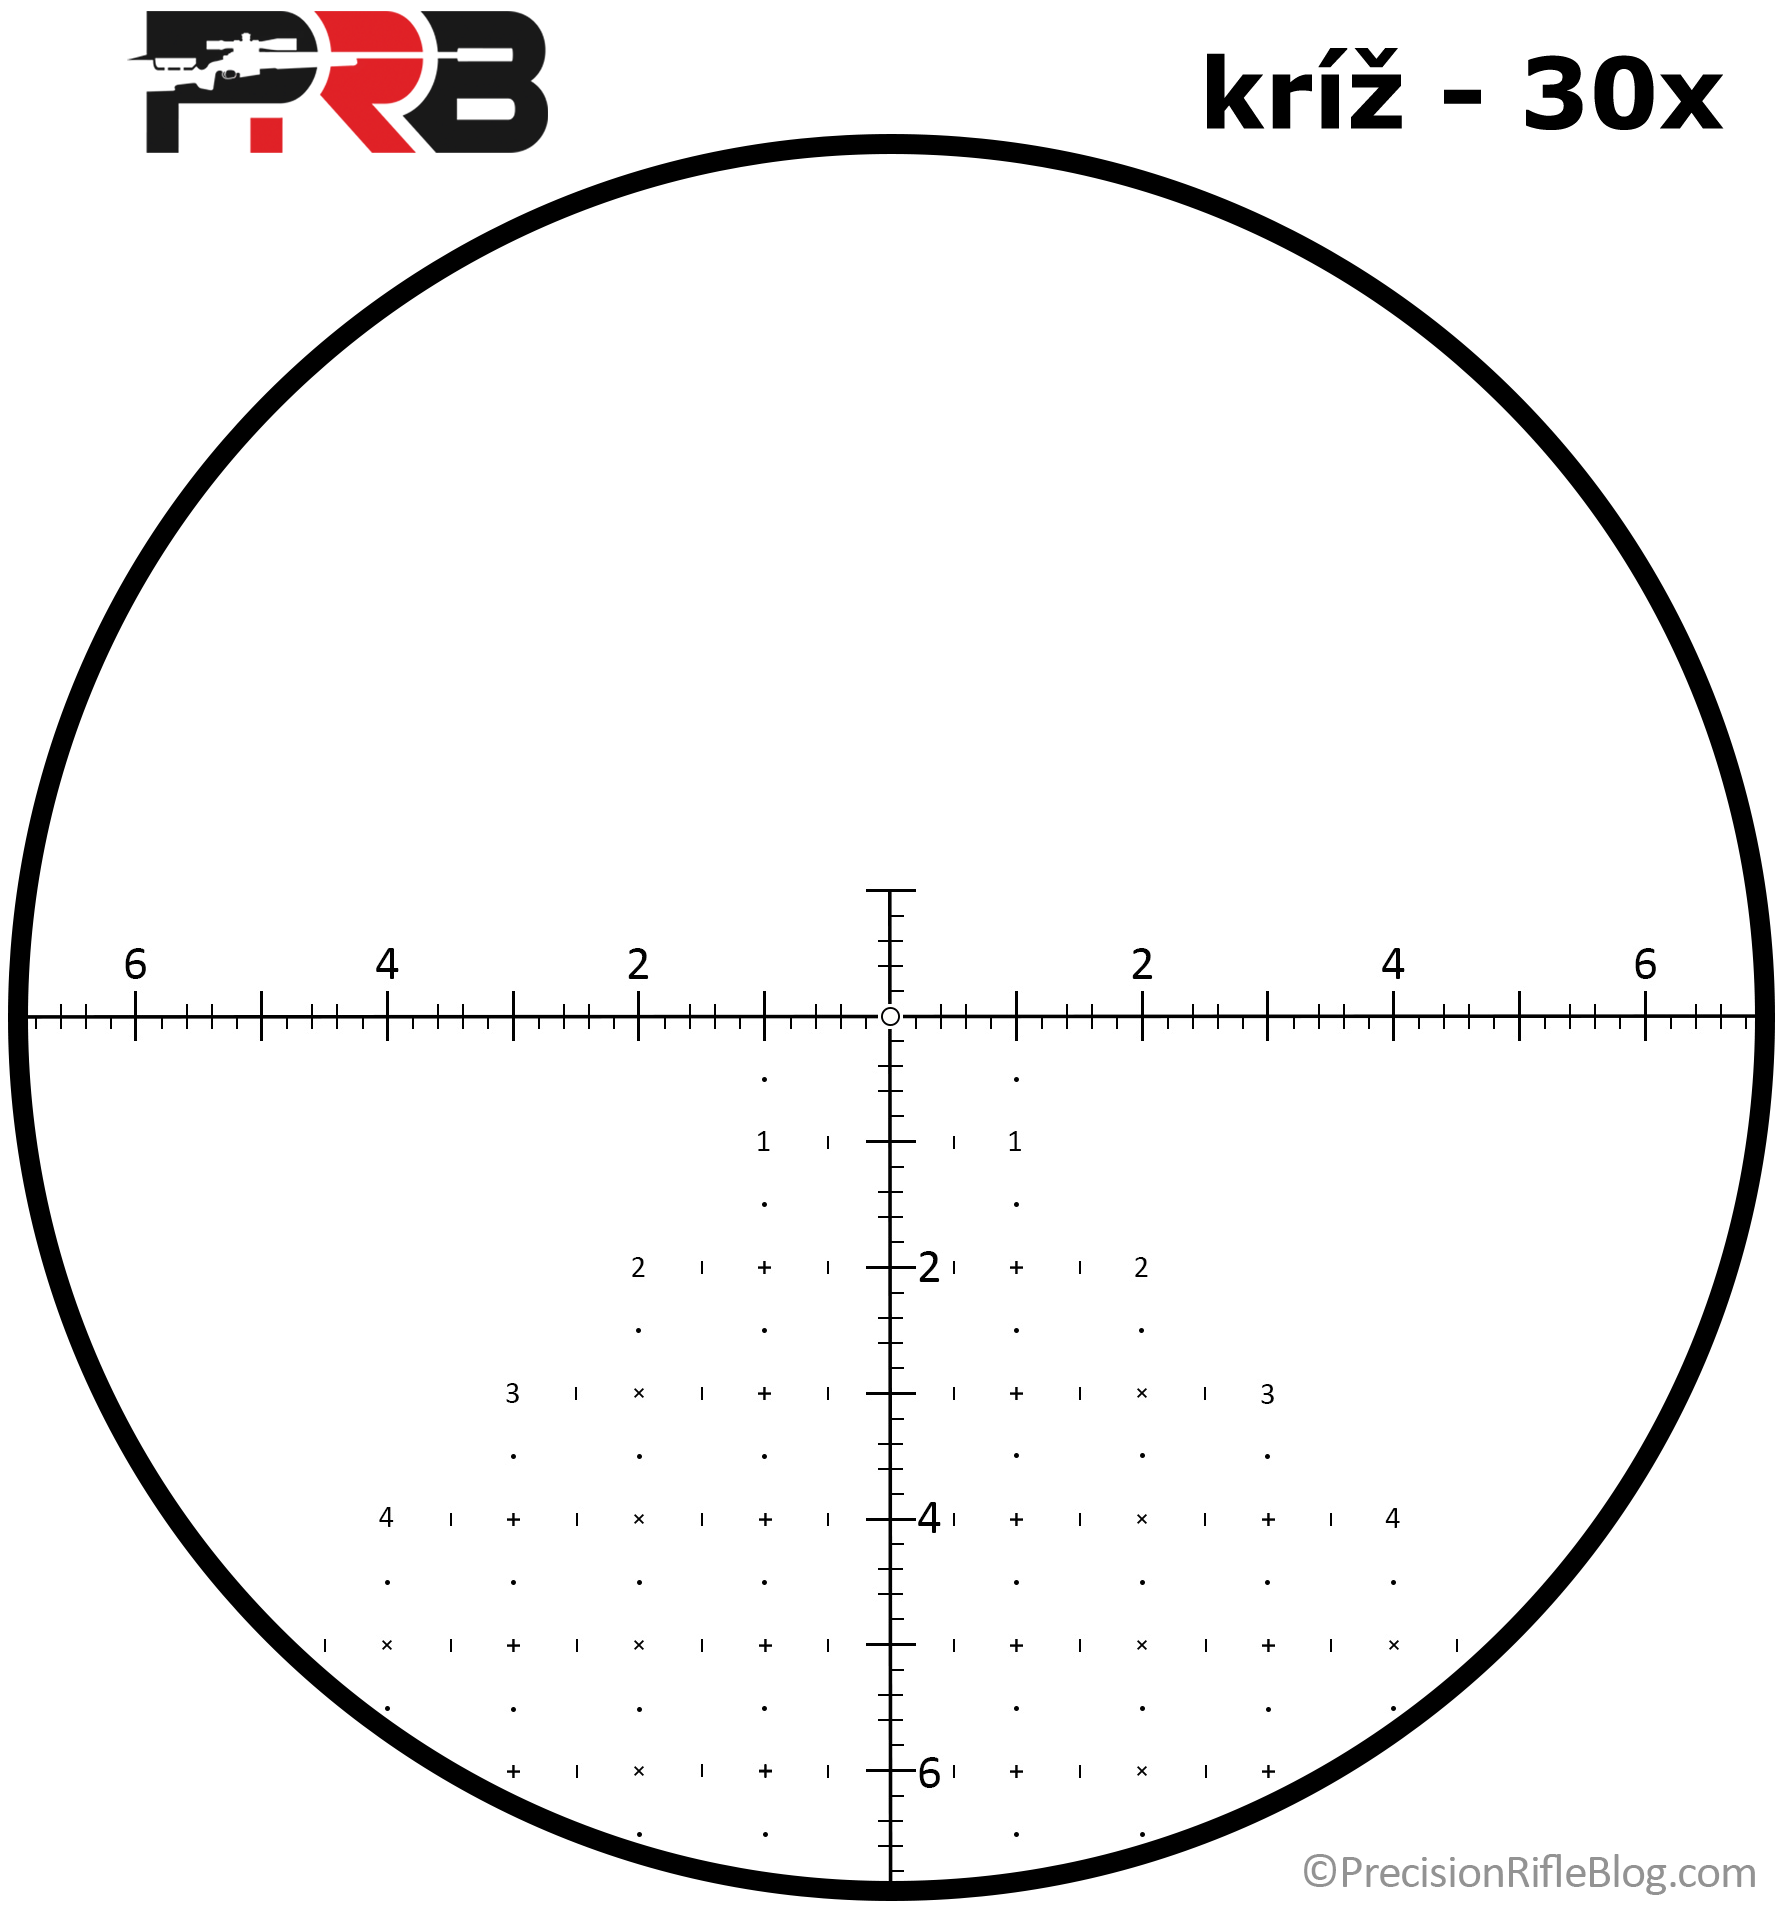 PRB-Reticle-at-30x-Magnification-1.png